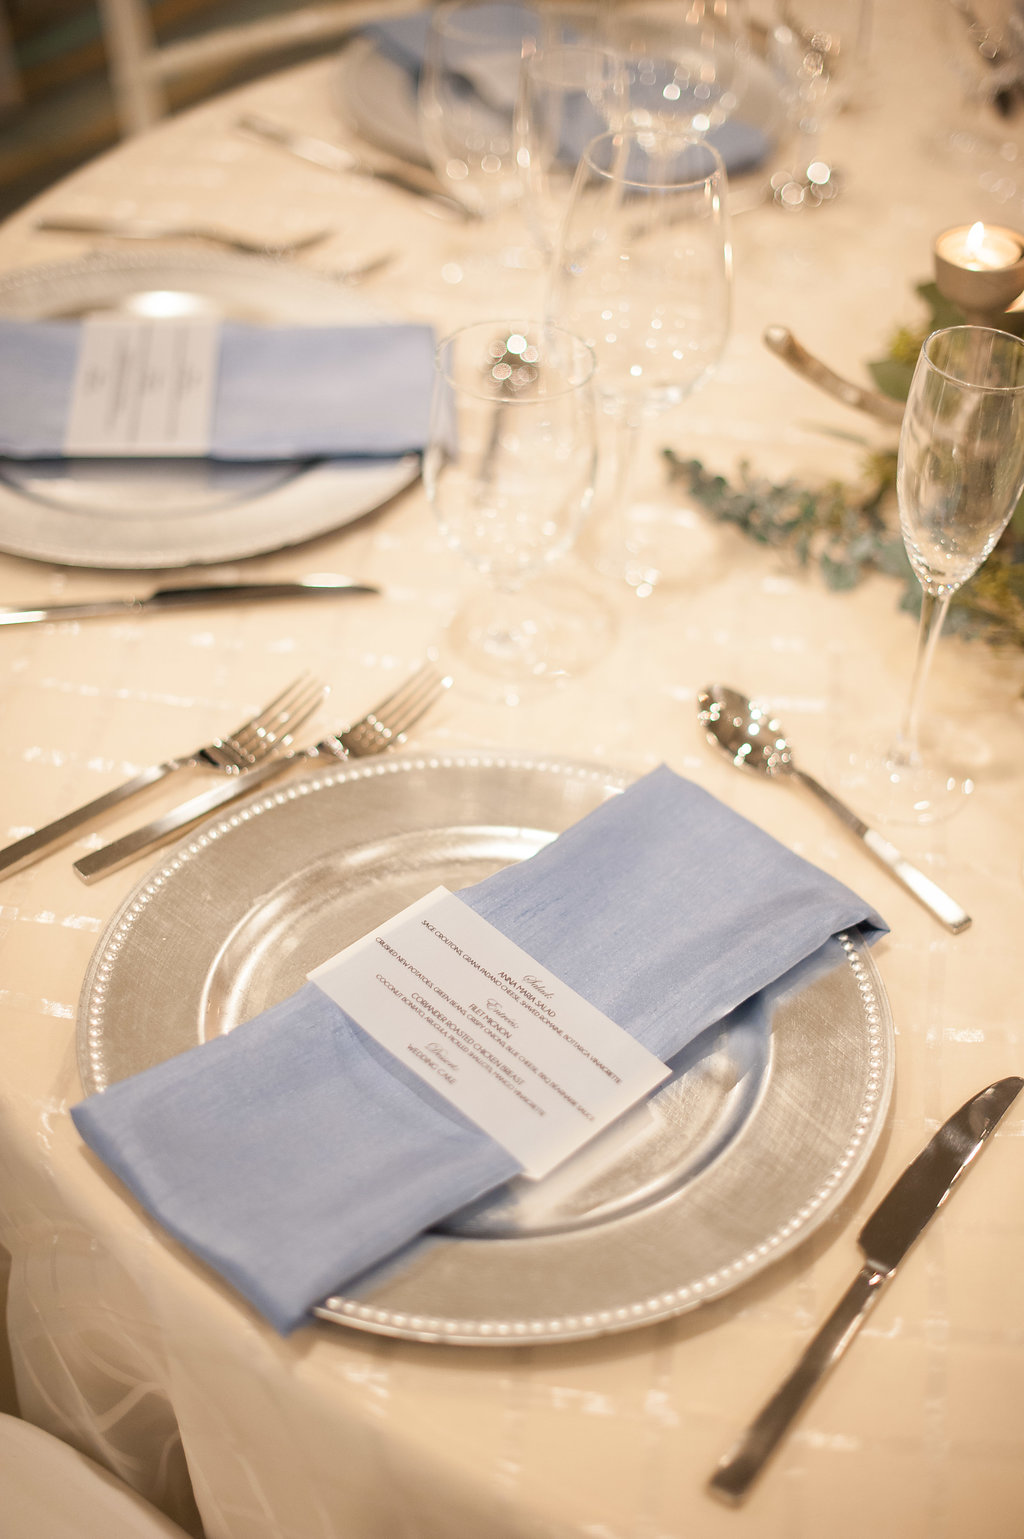 The silver chargers set with blue napkins, and elegant script menus brought a hint of watercolor to the neutral tables.